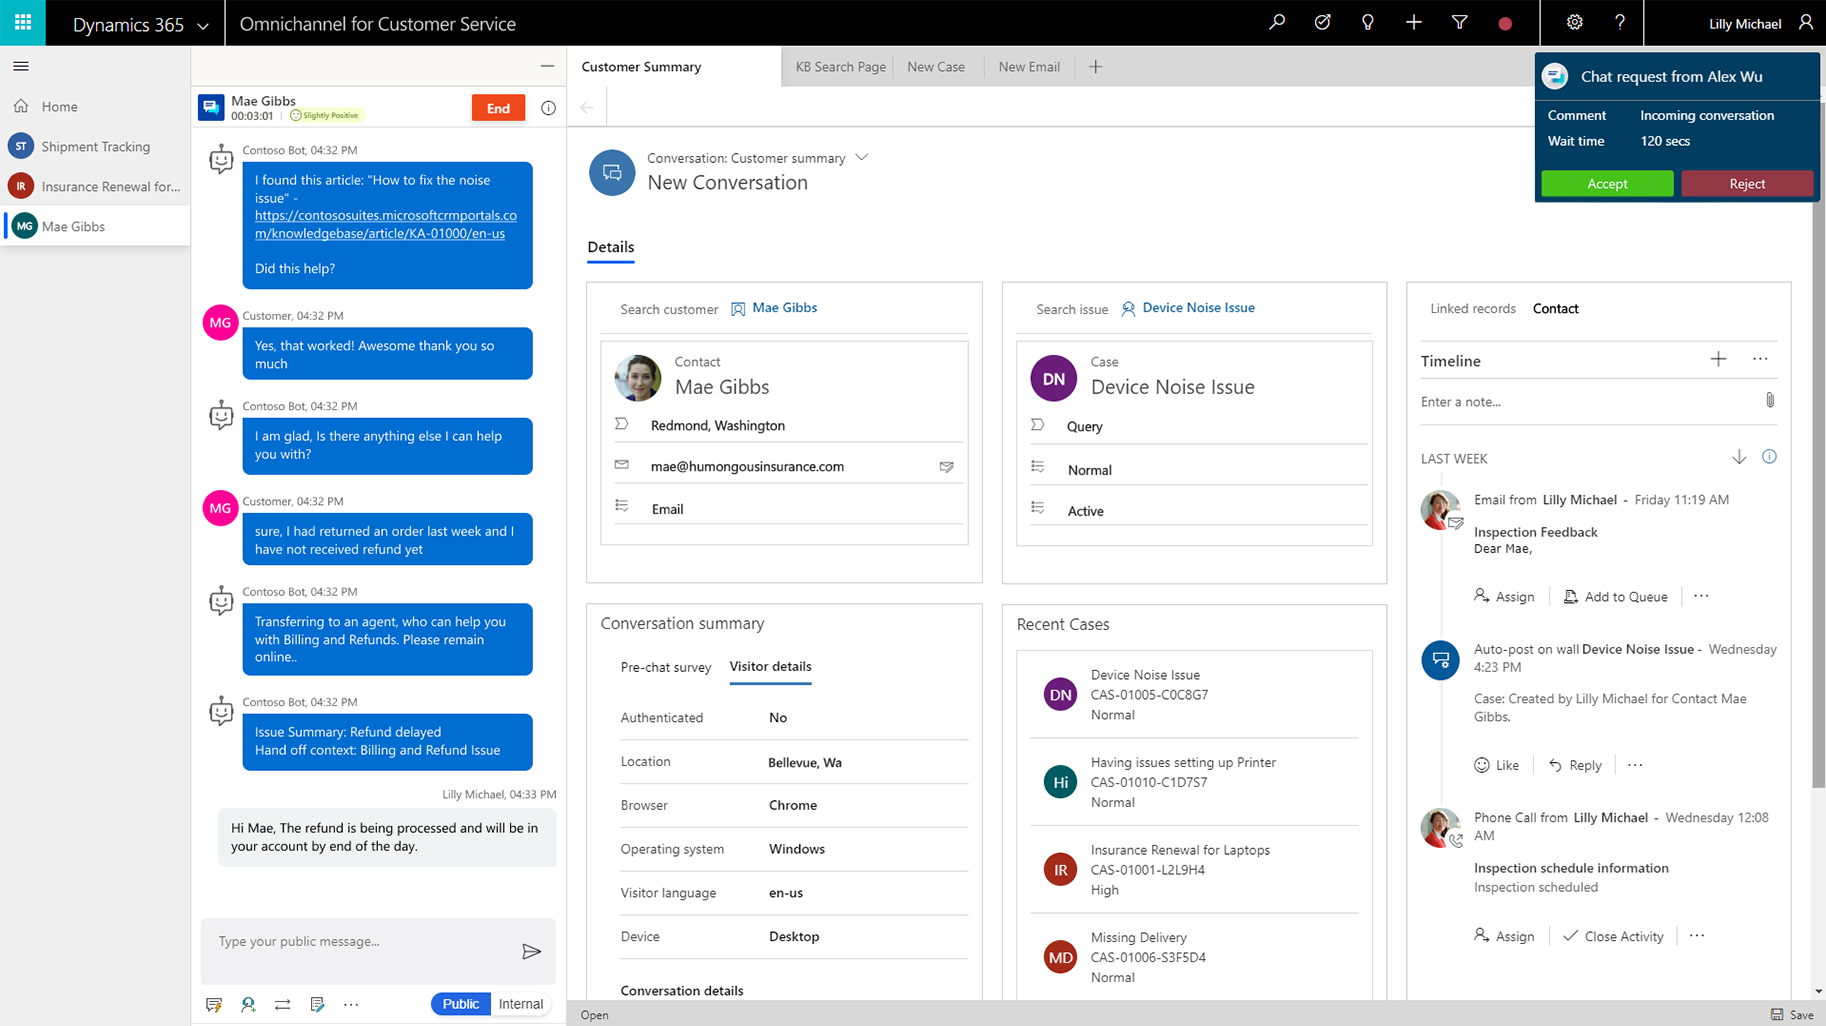 Microsoft Dynamics 365 omnichannel customer service